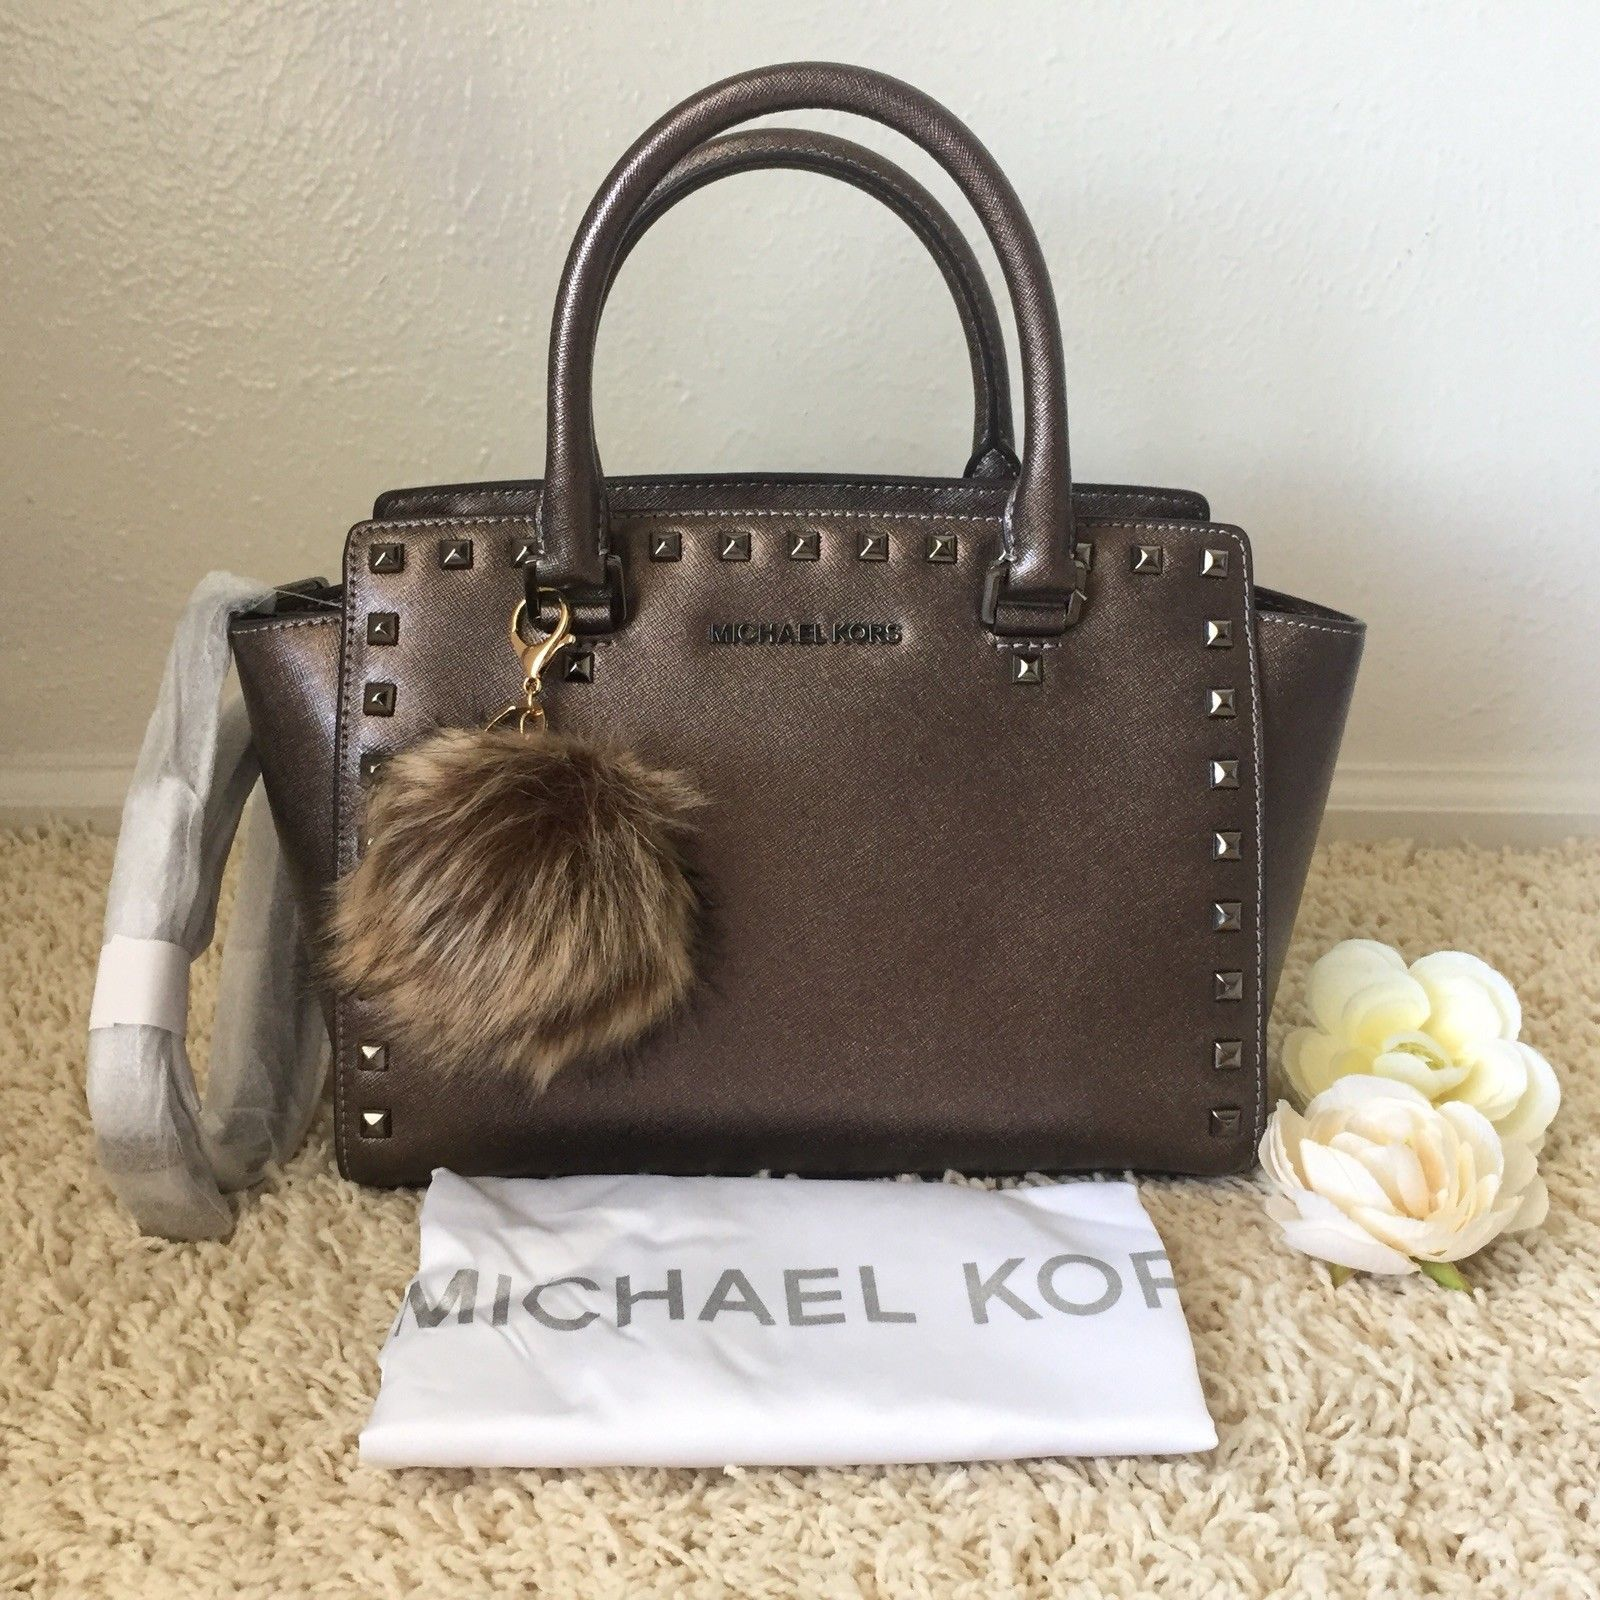 ... michael kors cary small leather bucket bag oxblood c47a6 caba7 ireland  flashsalemichael kors selma stud top zip and 50 similar items 53165 aca31  ... 9ff81b7702cc3